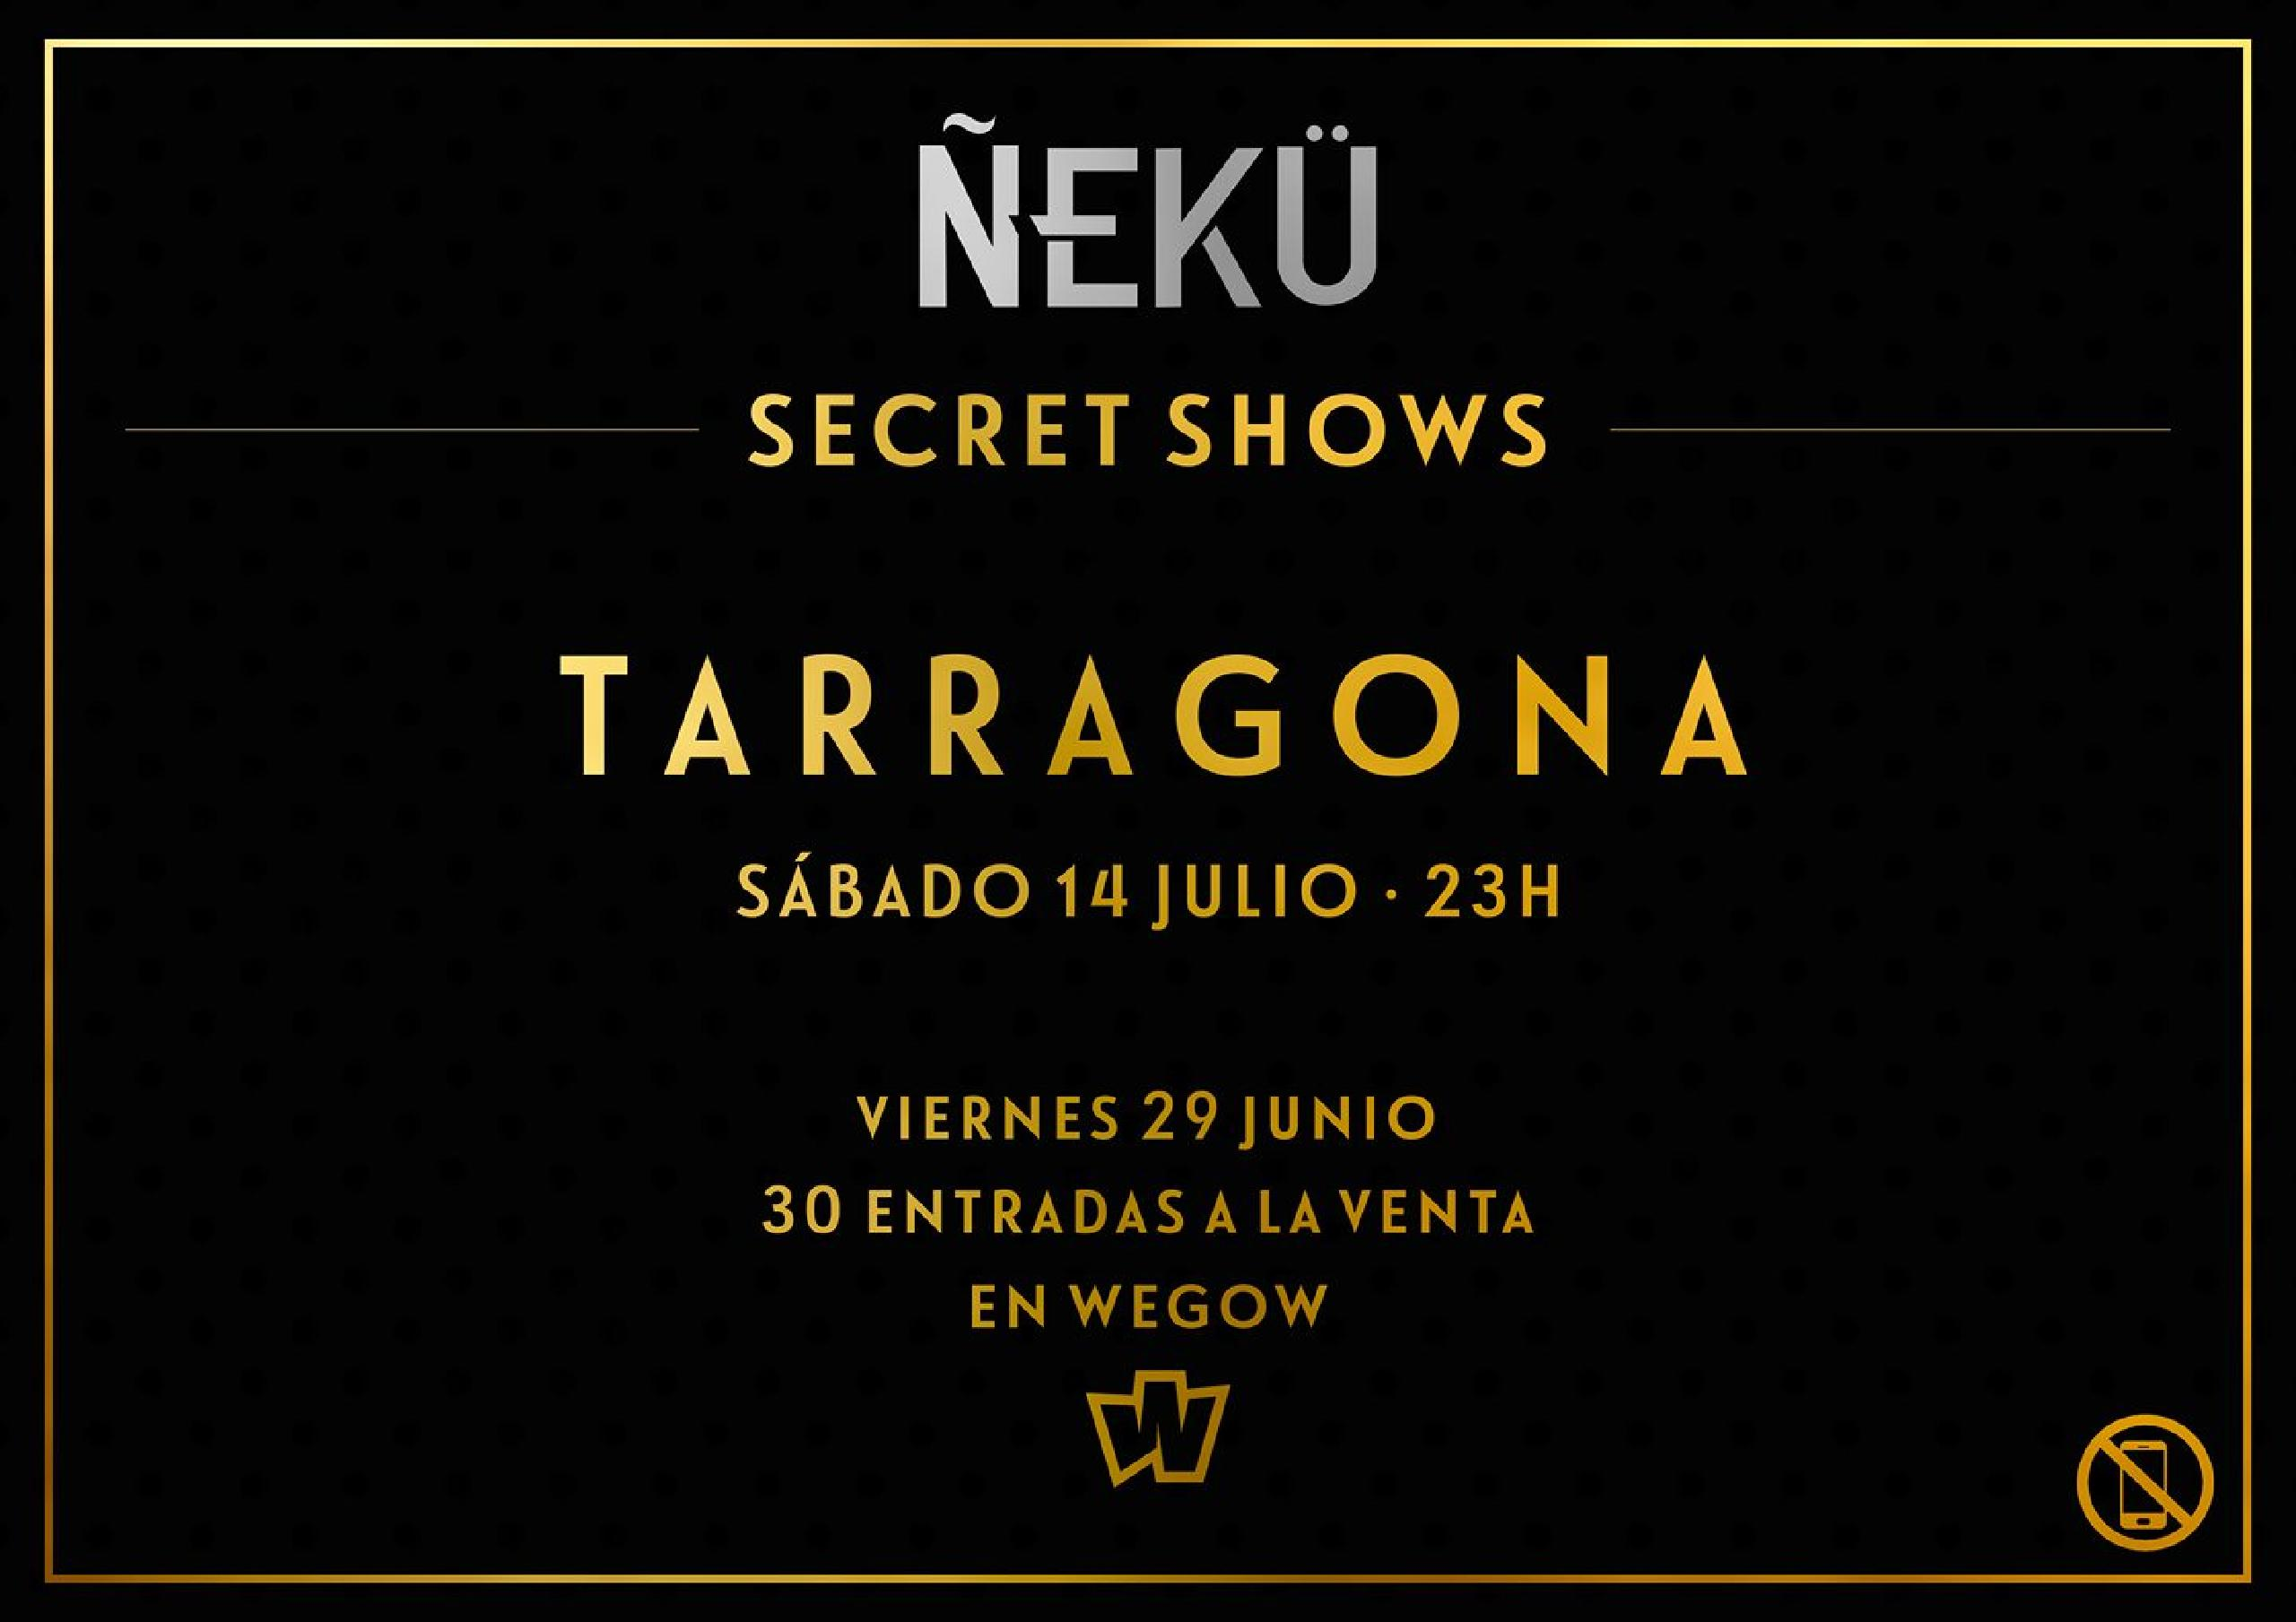 5 ciudades, 5 oportunidades de ver el exclusivo Secret Show.